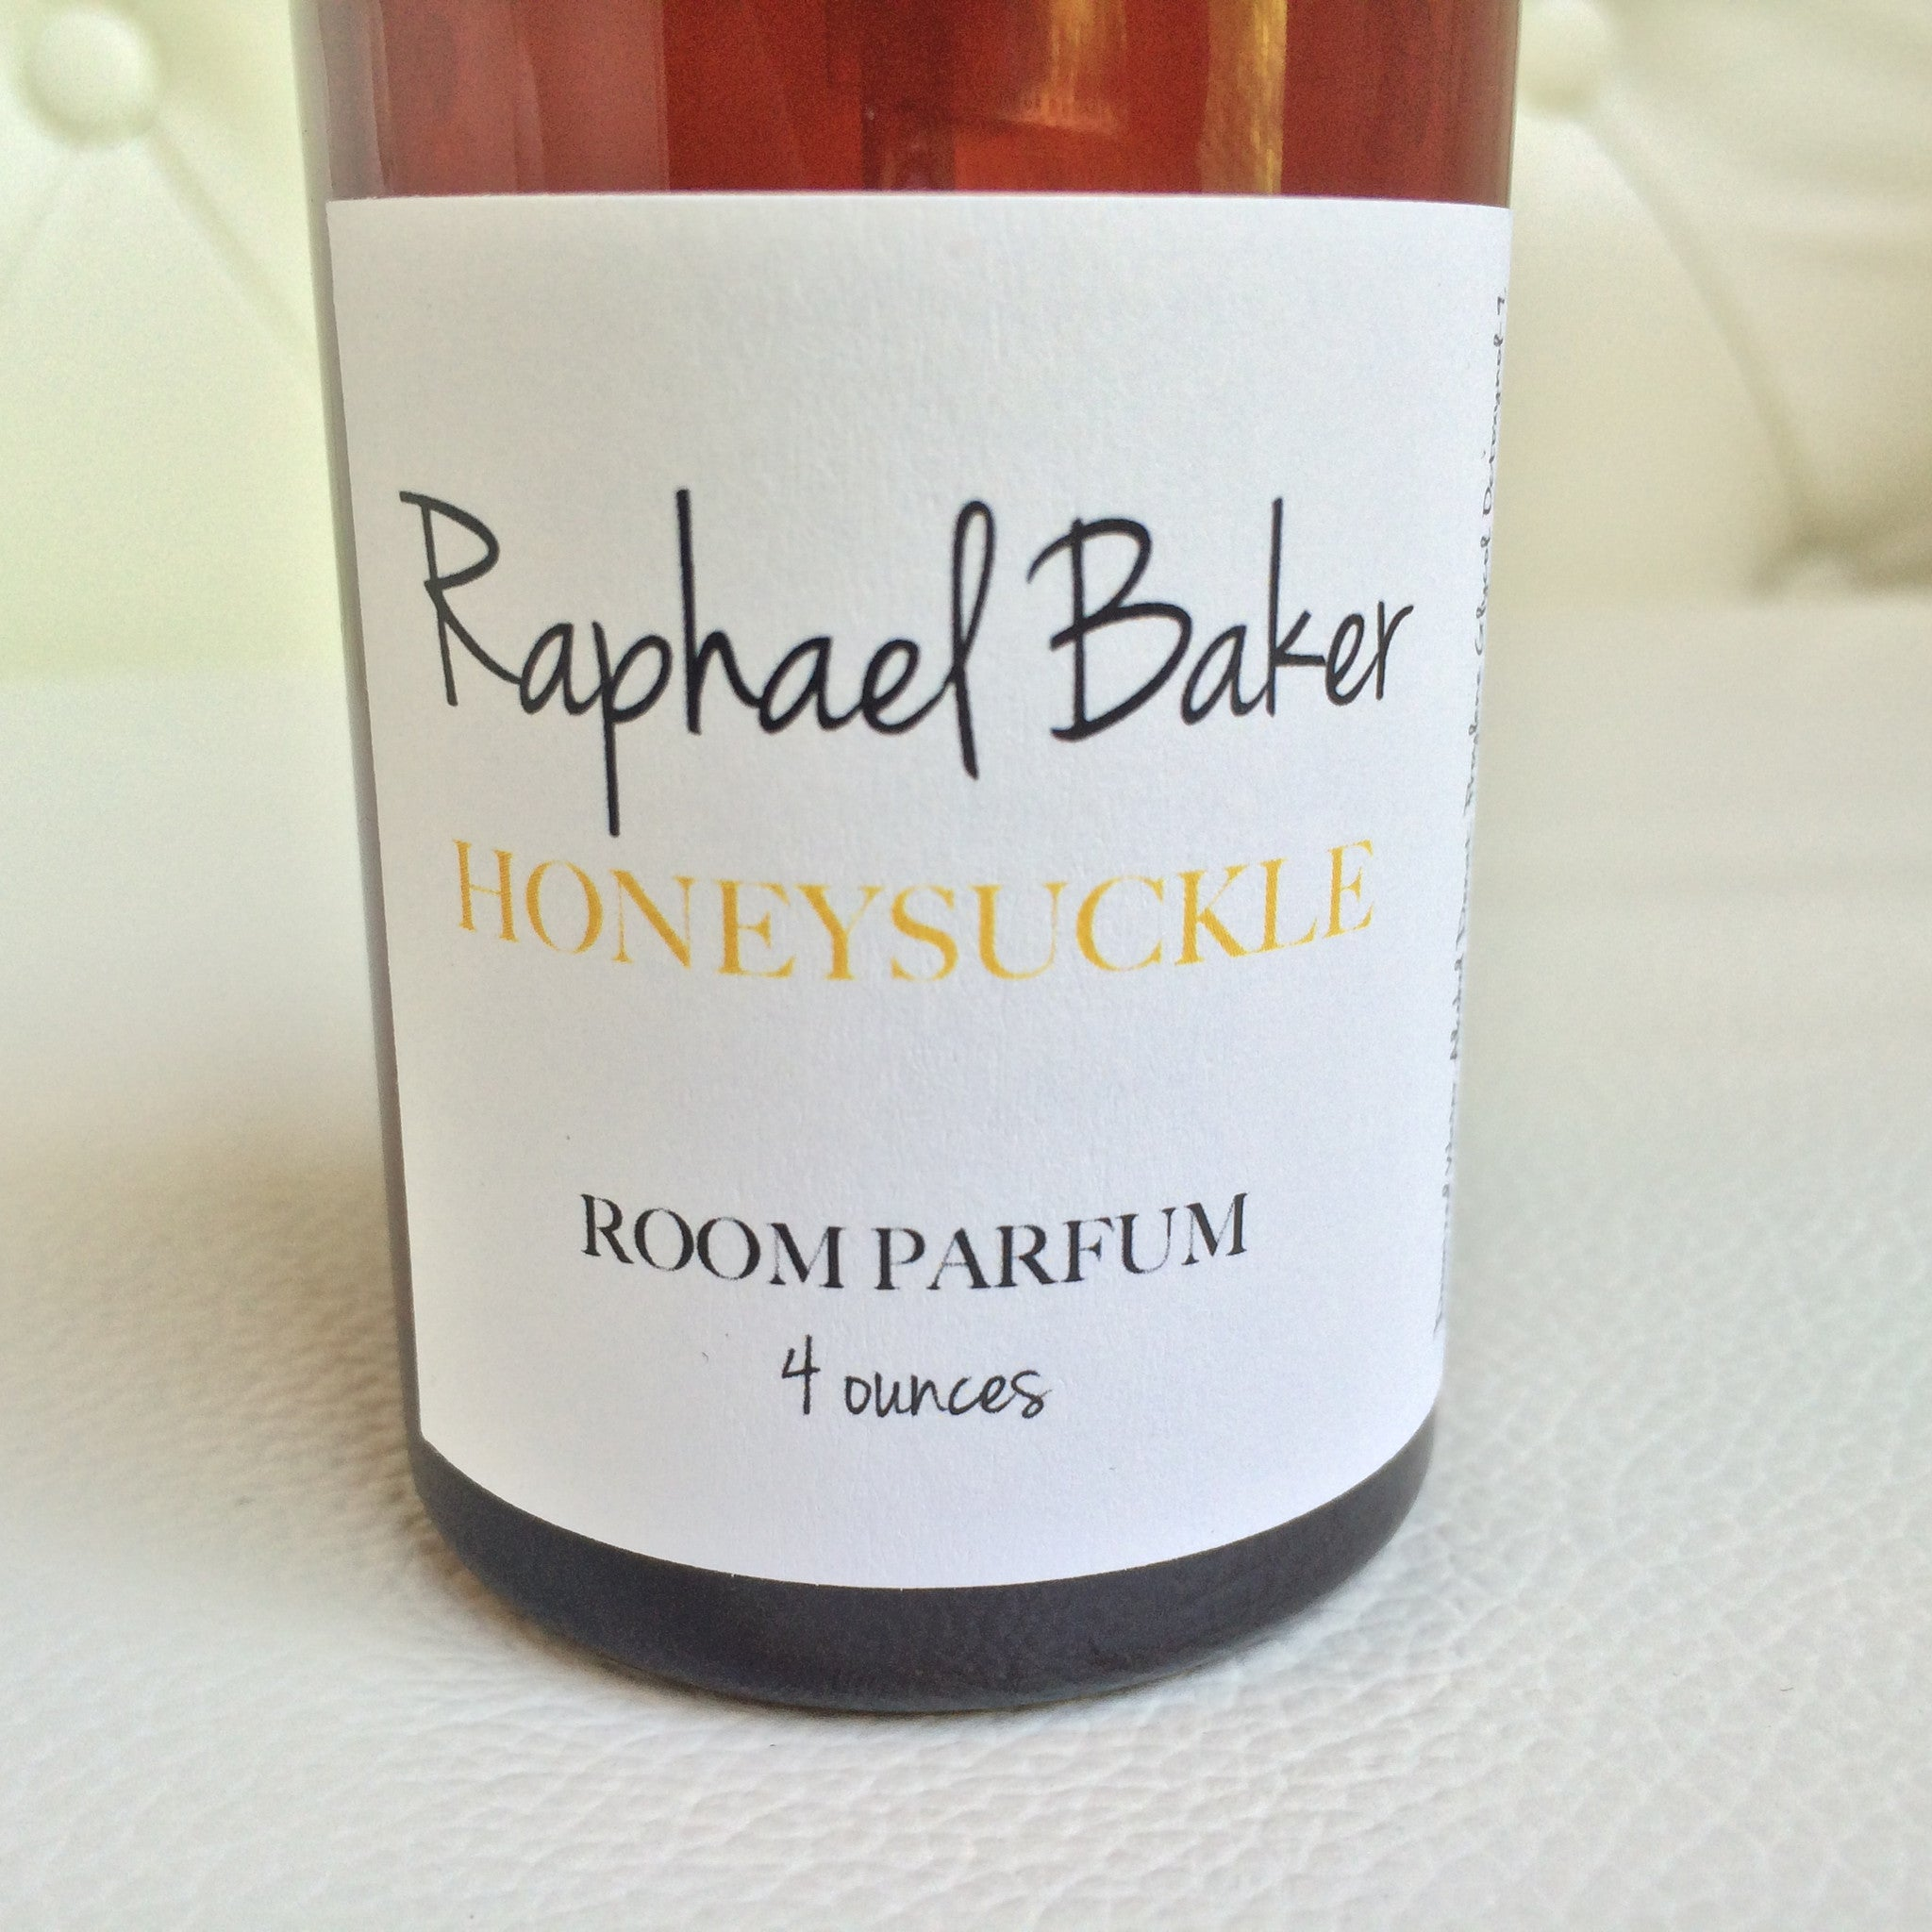 RAPHAEL BAKER 'HONEYSUCKLE' ROOM PARFUM